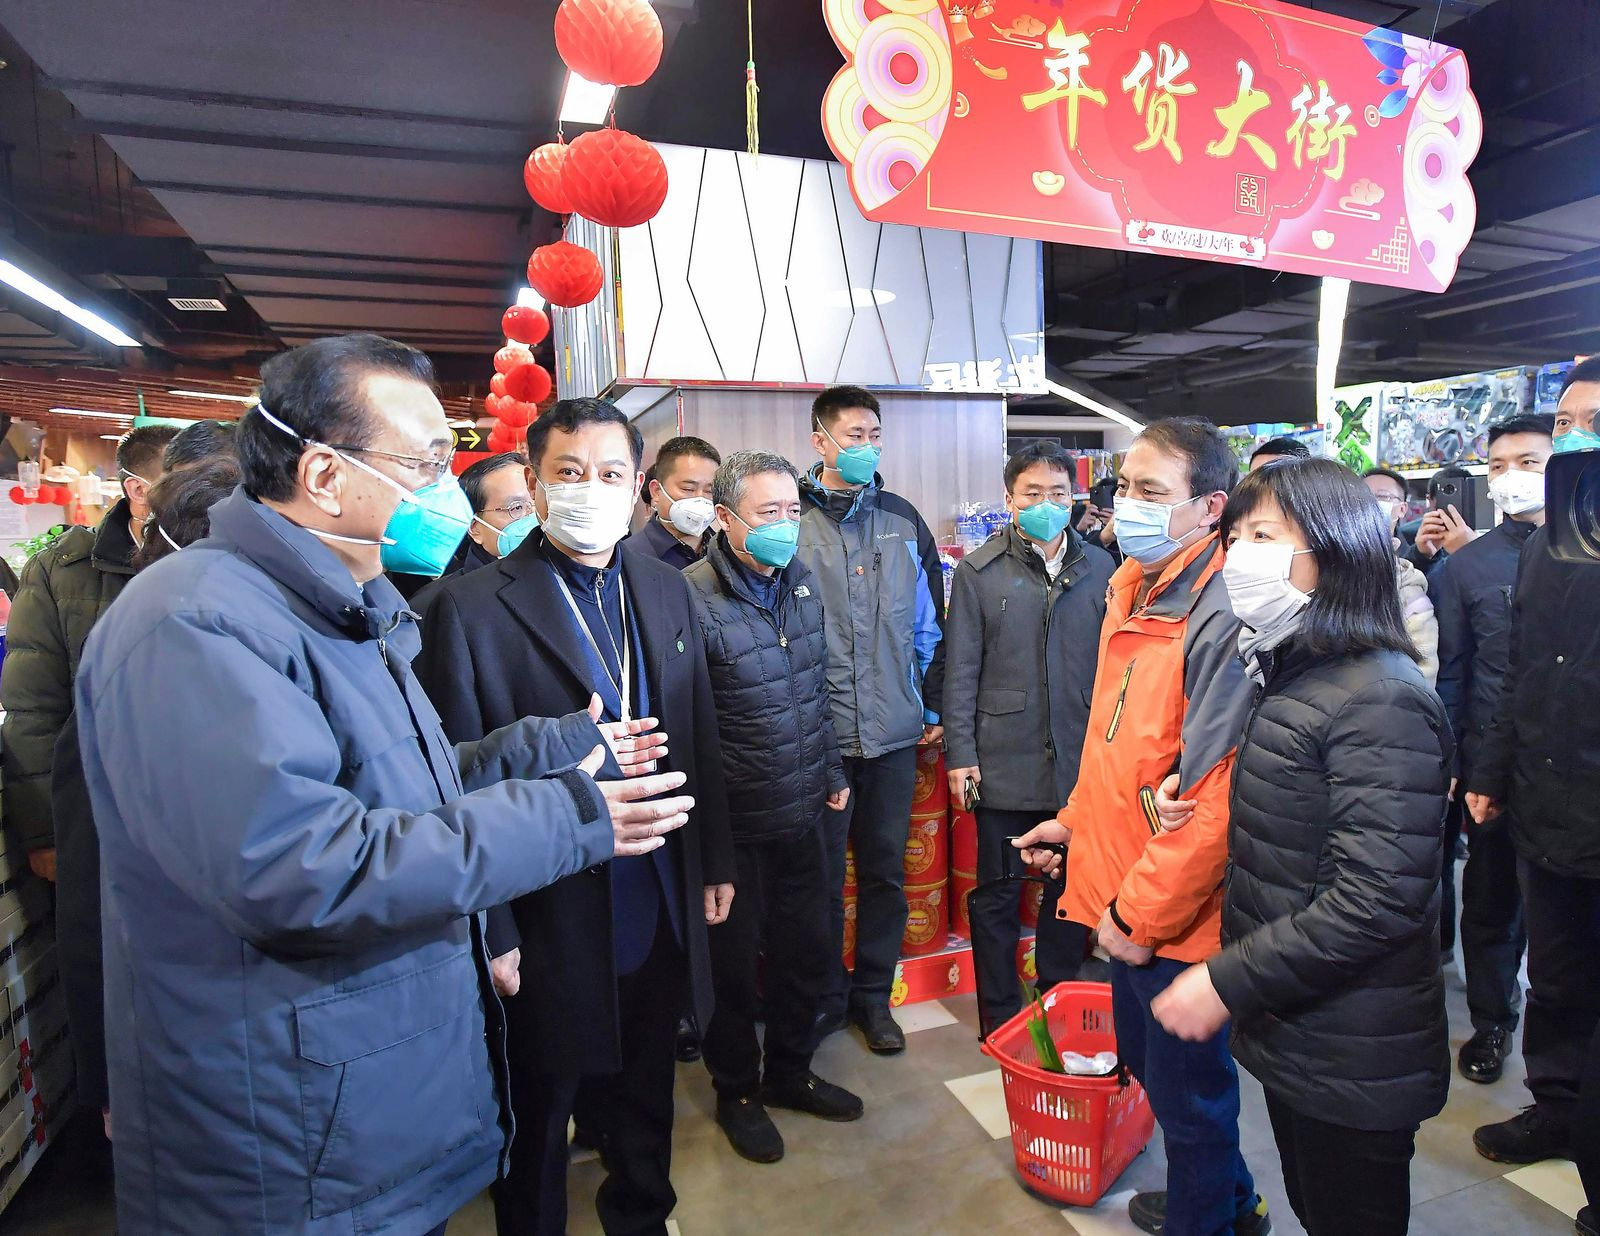 In this photo released by China's Xinhua News Agency, Chinese Premier Li Keqiang, left, speaks with people at a supermarket in Wuhan in central China's Hubei province, Monday, Jan. 27, 2020. China on Monday expanded its sweeping efforts to contain a deadly virus, extending the Lunar New Year holiday to keep the public at home and avoid spreading infection. (Li Tao/Xinhua via AP)